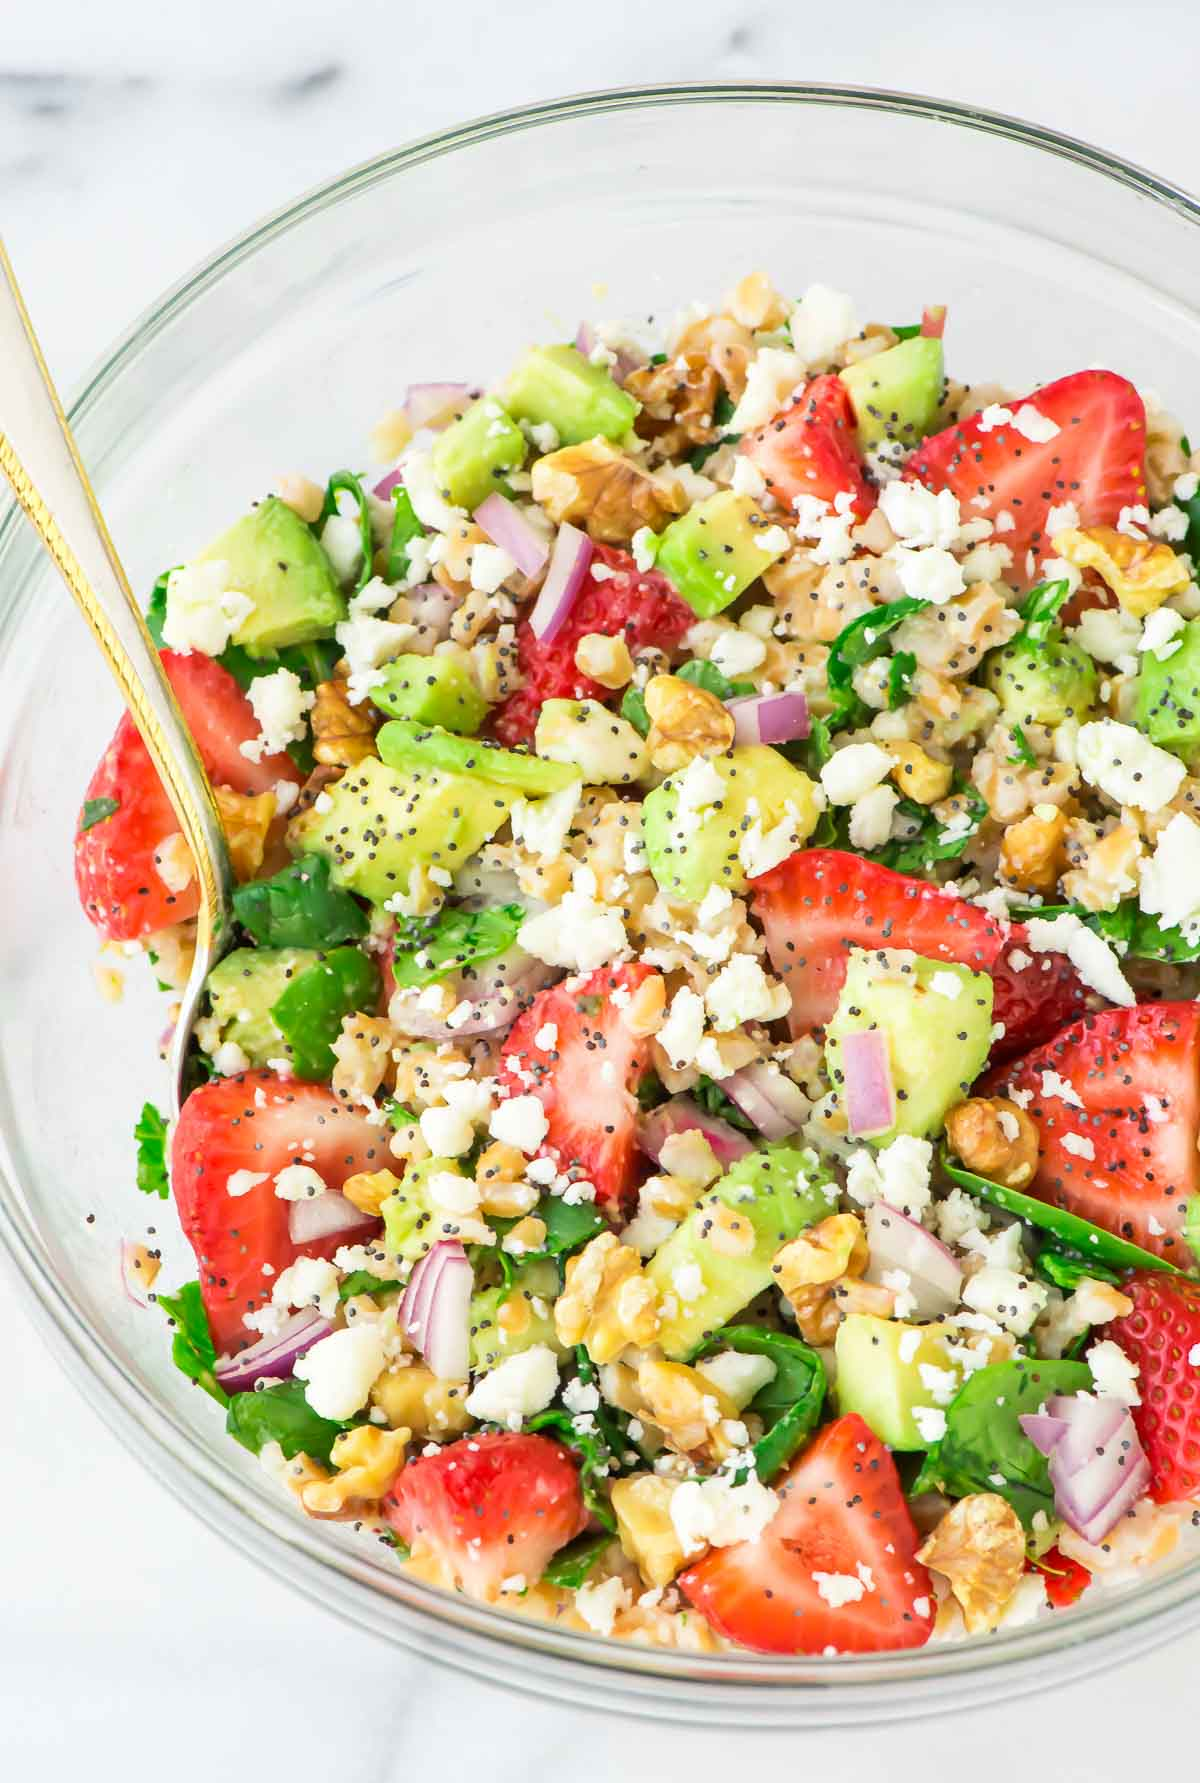 Full of spinach, feta, avocado, and lots of fresh strawberries, this Strawberry Farro Salad makes a perfect summer meal. Tossed in a balsamic poppy seed dressing. YUM! @wellplated